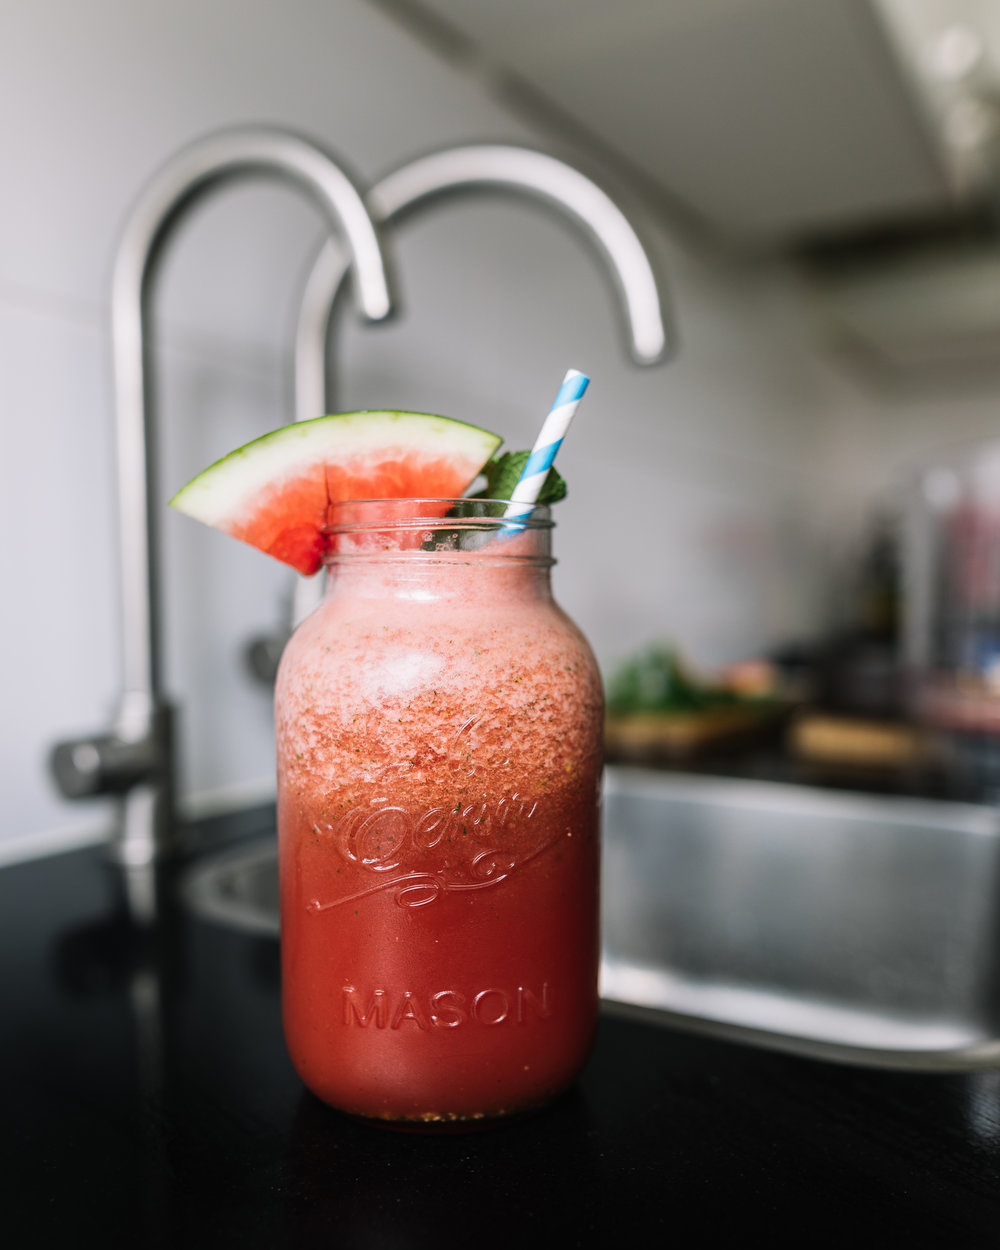 #2 Ginger and Watermelon Frappé17.jpg